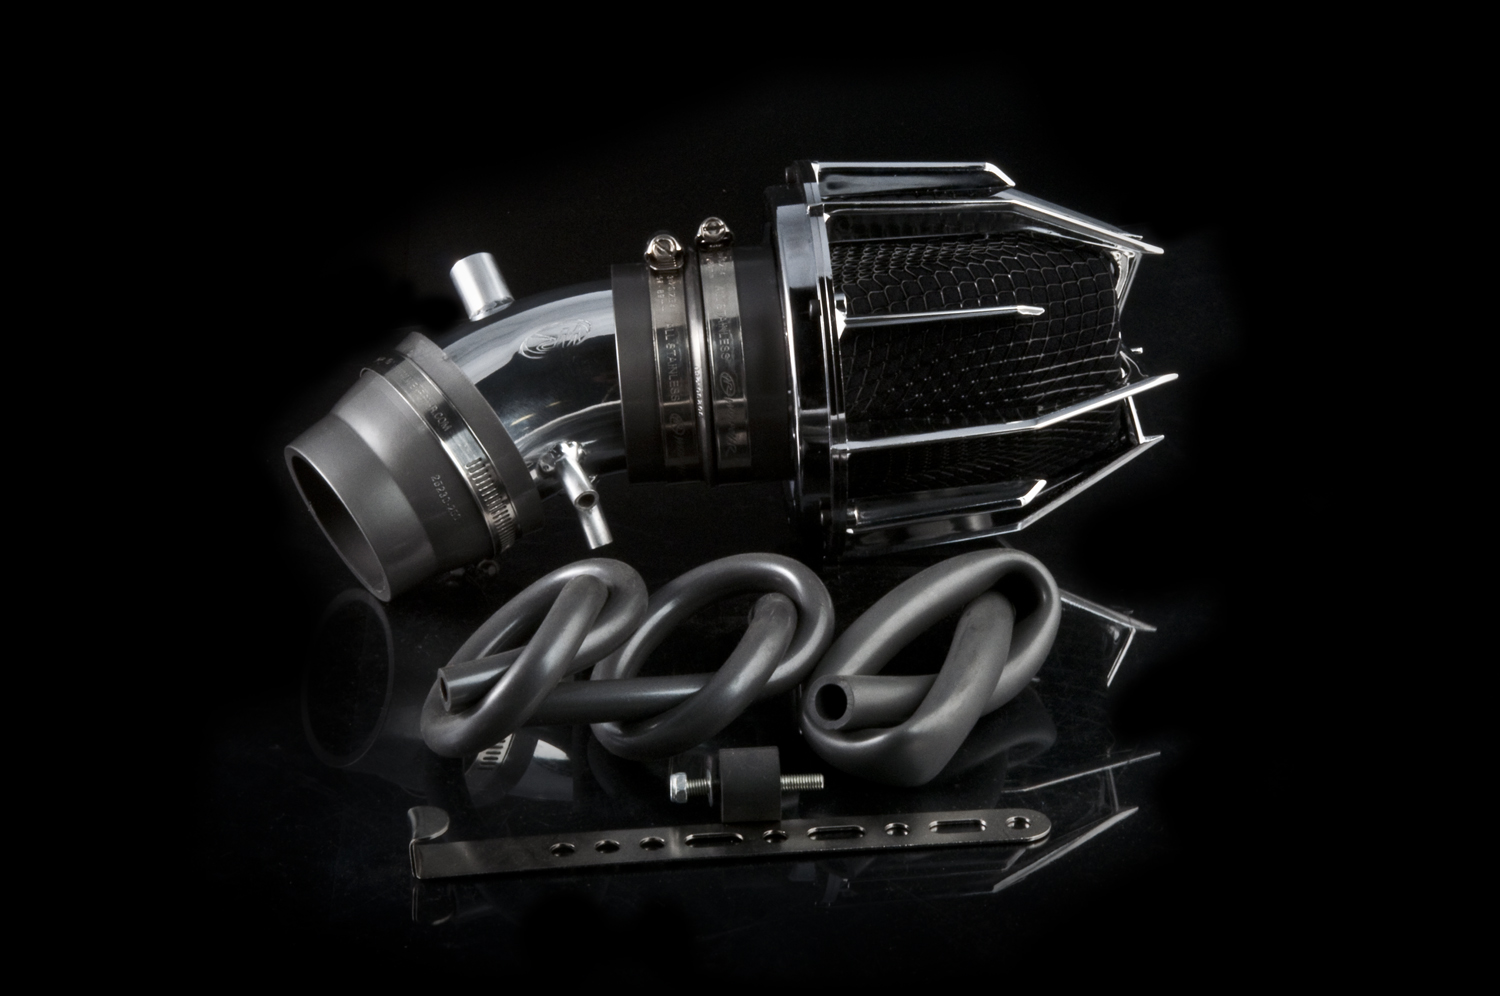 Hyundai Tiburon / Elantra 4cyl 2.0l 1997-2000 Weapon-R Dragon Air Intake